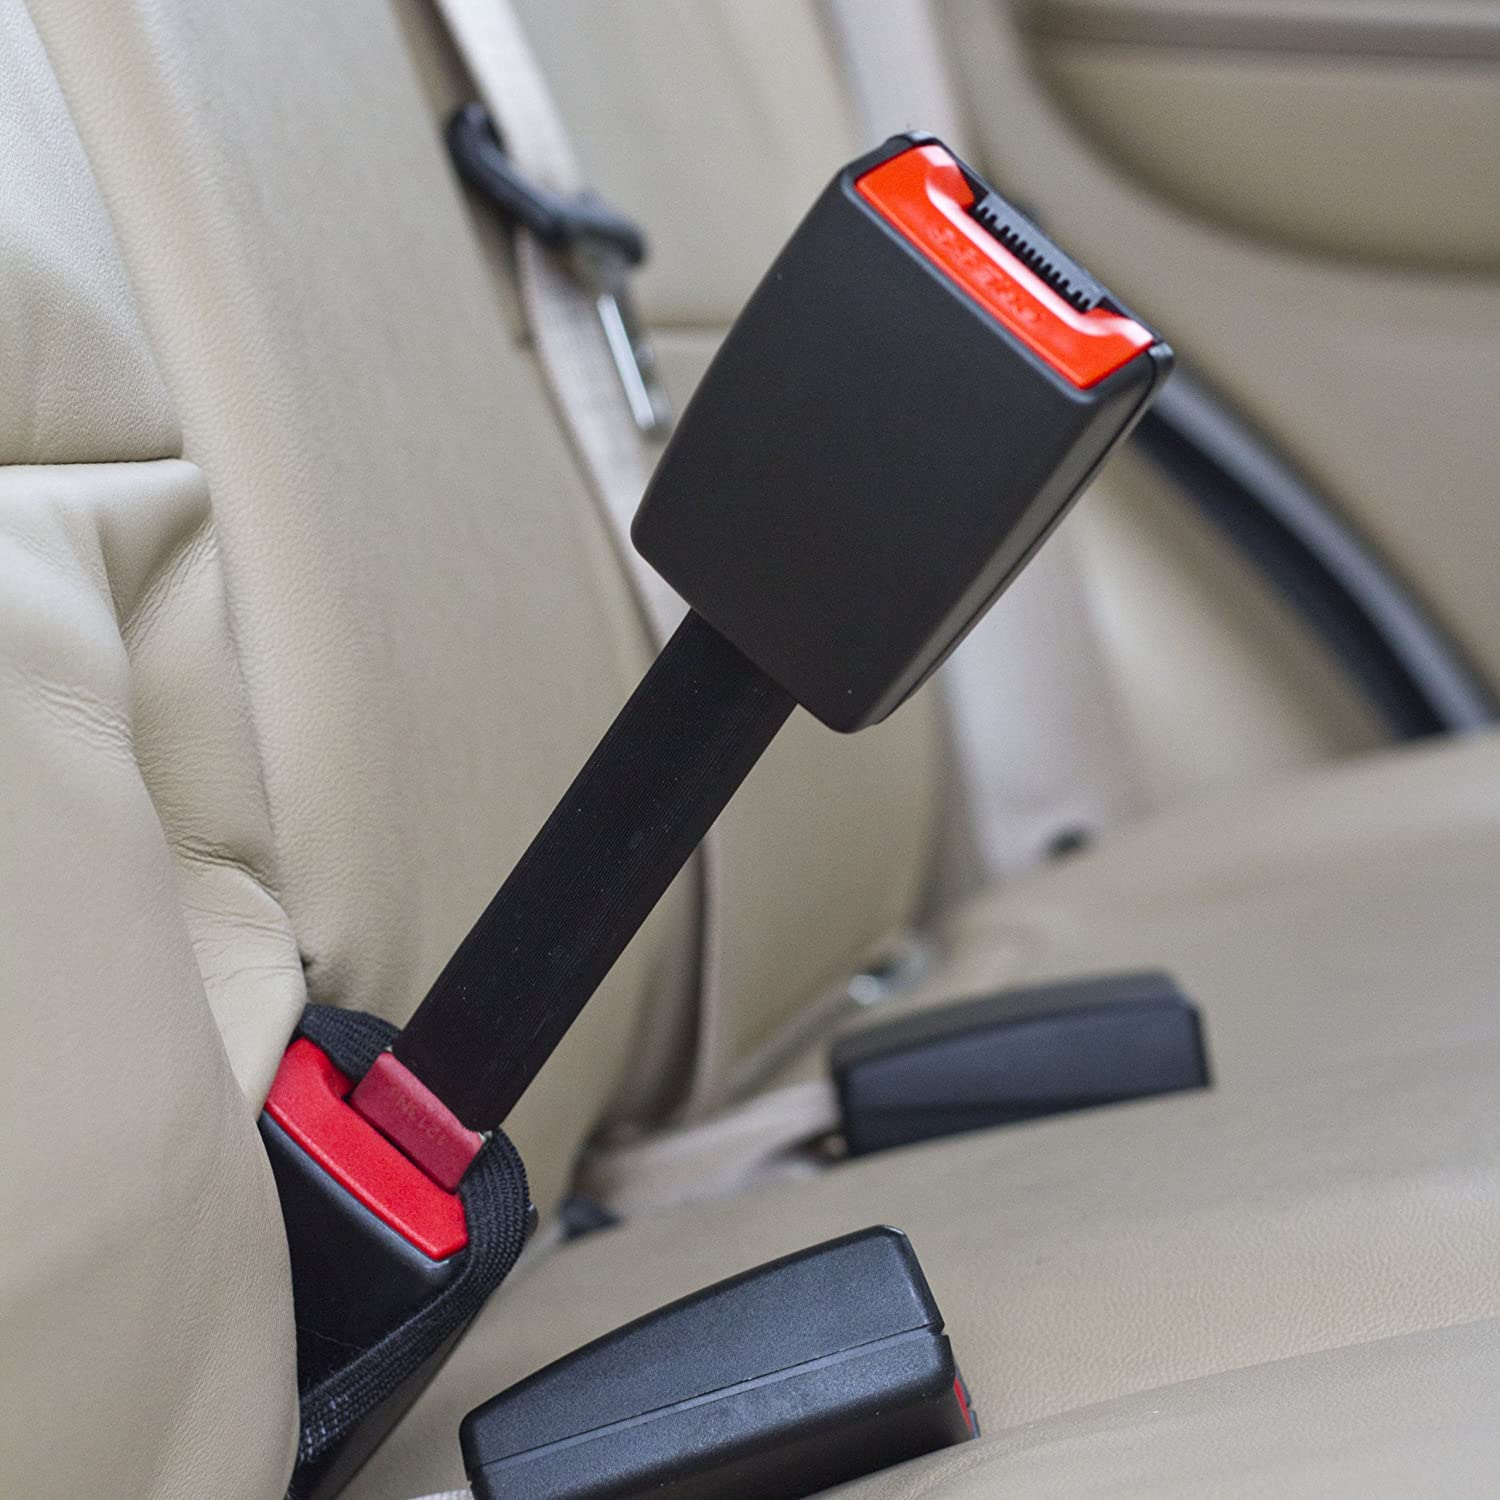 Extend Belt Buckle Up /& Drive Safely Again 7//8 Inch Metal Tongue Width - E-Mark Safety Certified Sticks Upright 3-Pack Rigid 7 Seat Belt Lengthening Accessory